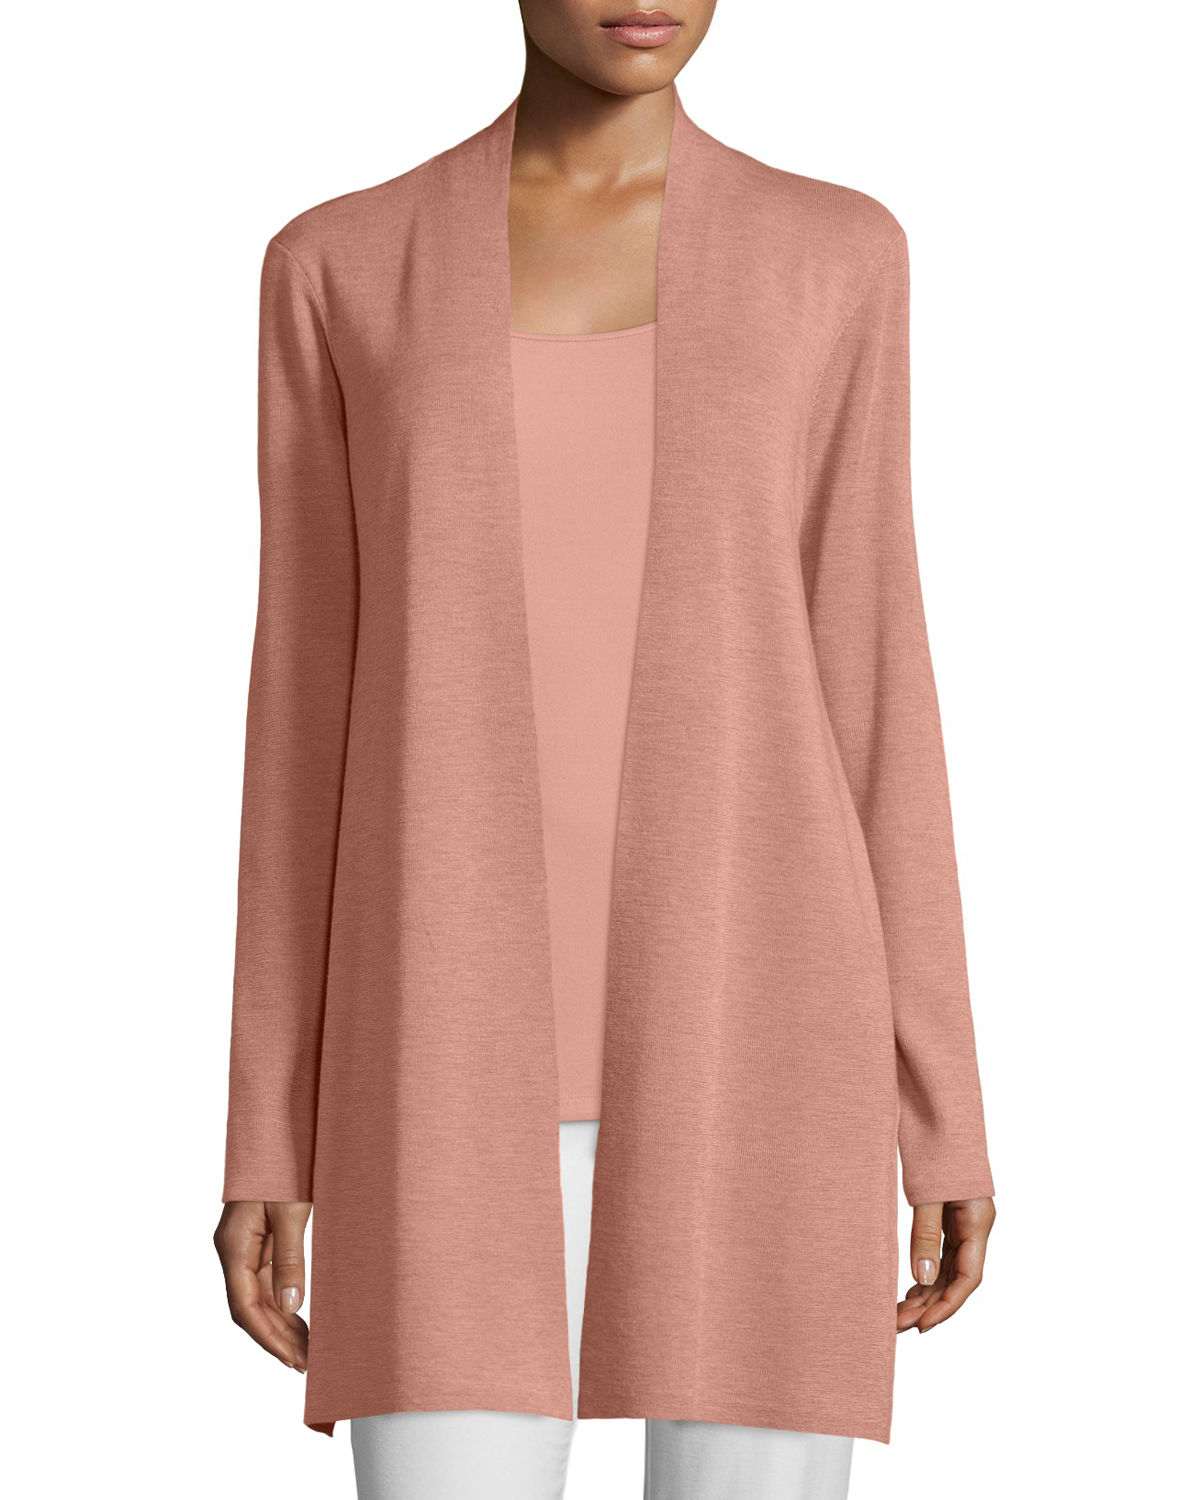 Eileen fisher Long Washable Merino Wool Cardigan in Pink | Lyst